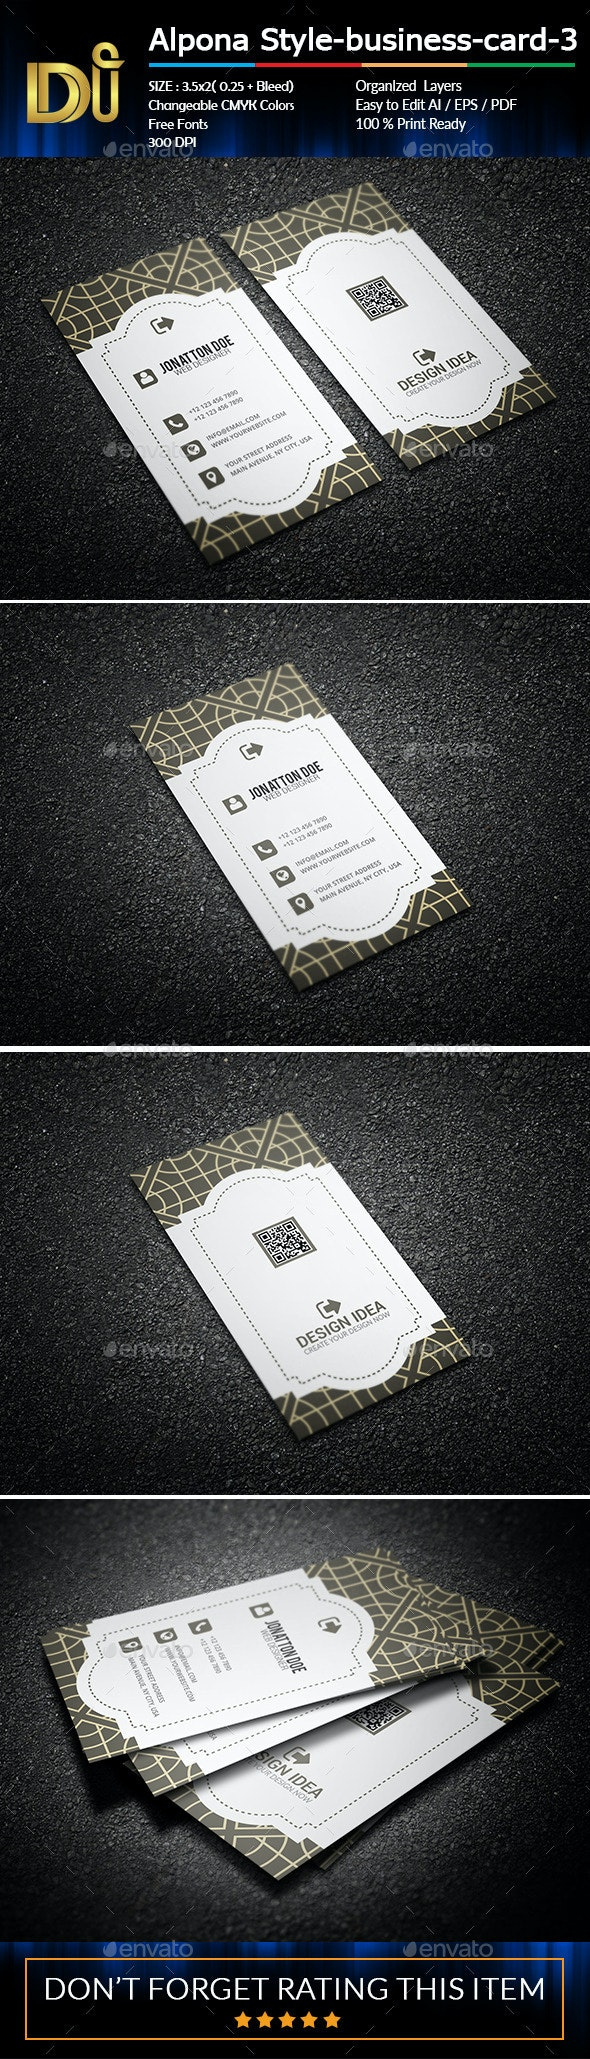 Alpona Style Business card-3 - Business Cards Print Templates